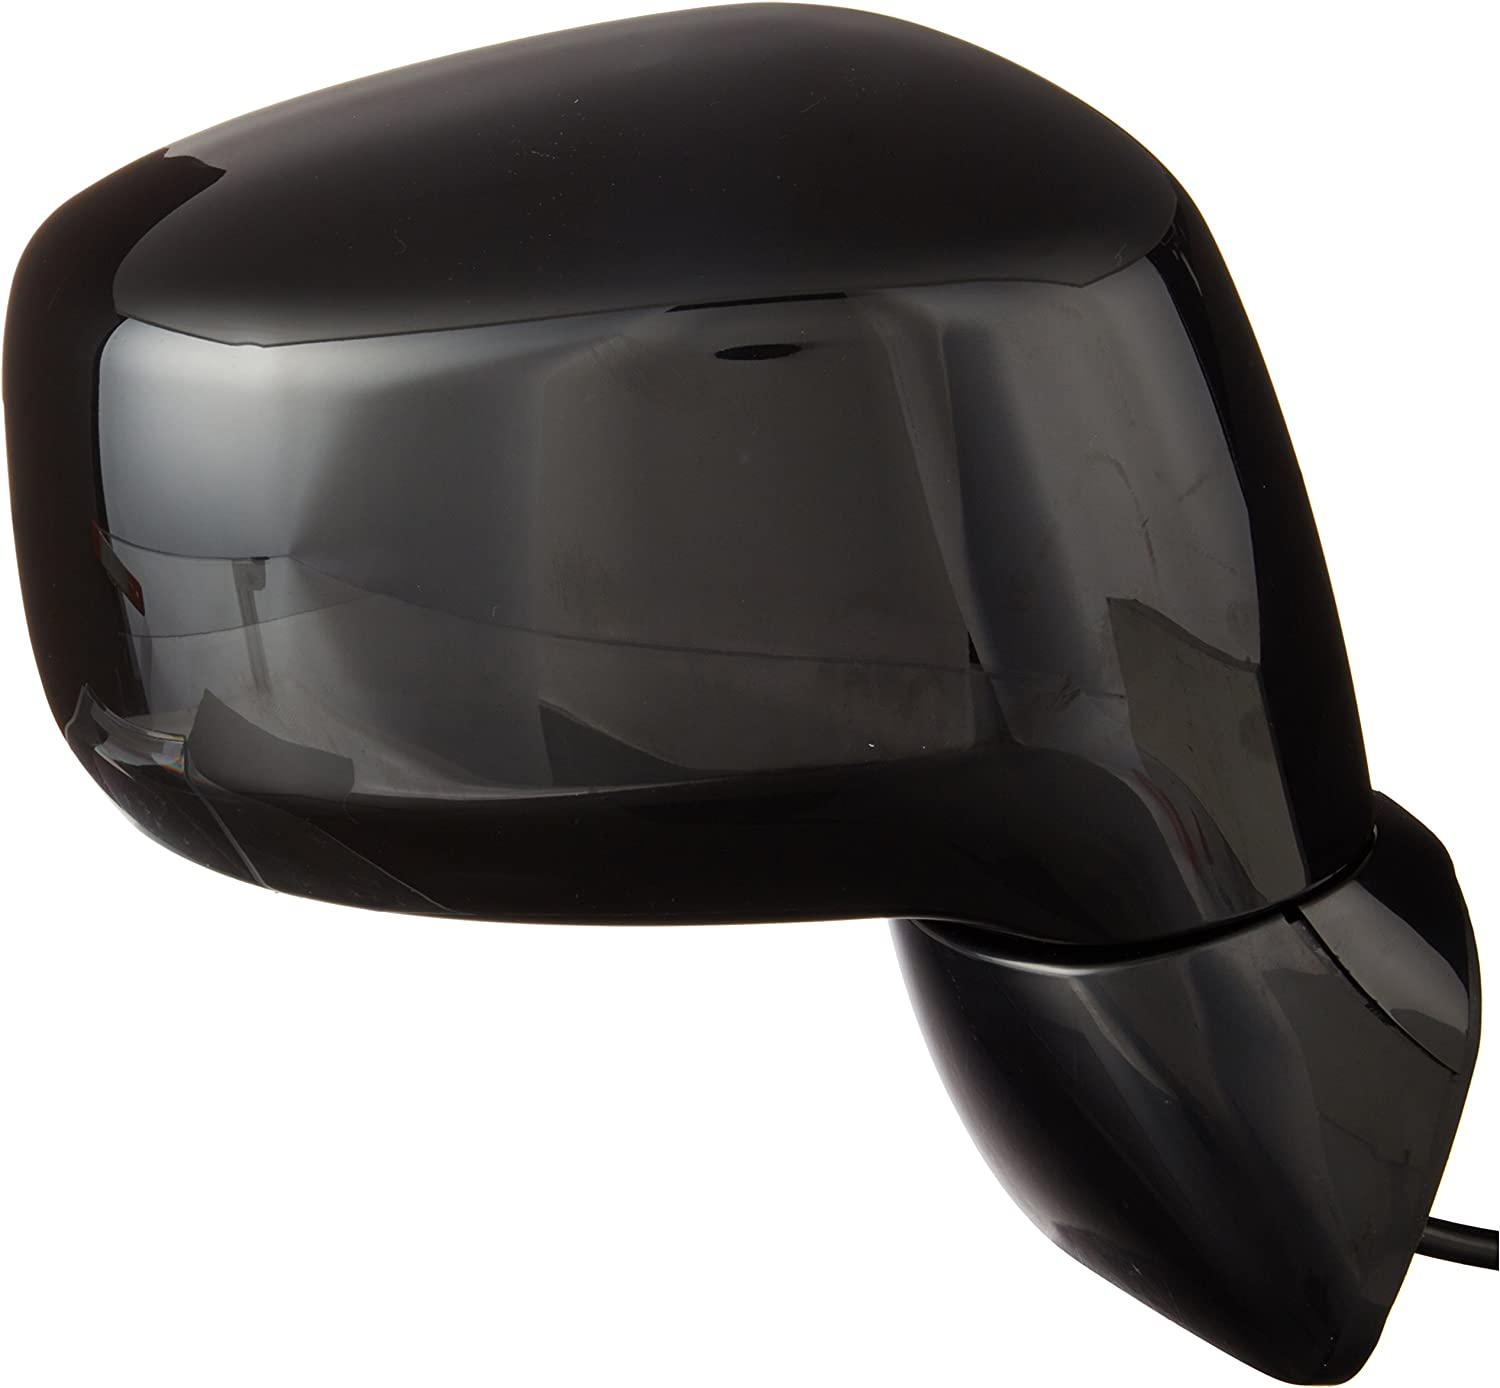 OE Replacement Nissan//Datsun Versa Passenger Side Mirror Outside Rear View Partslink Number NI1321200